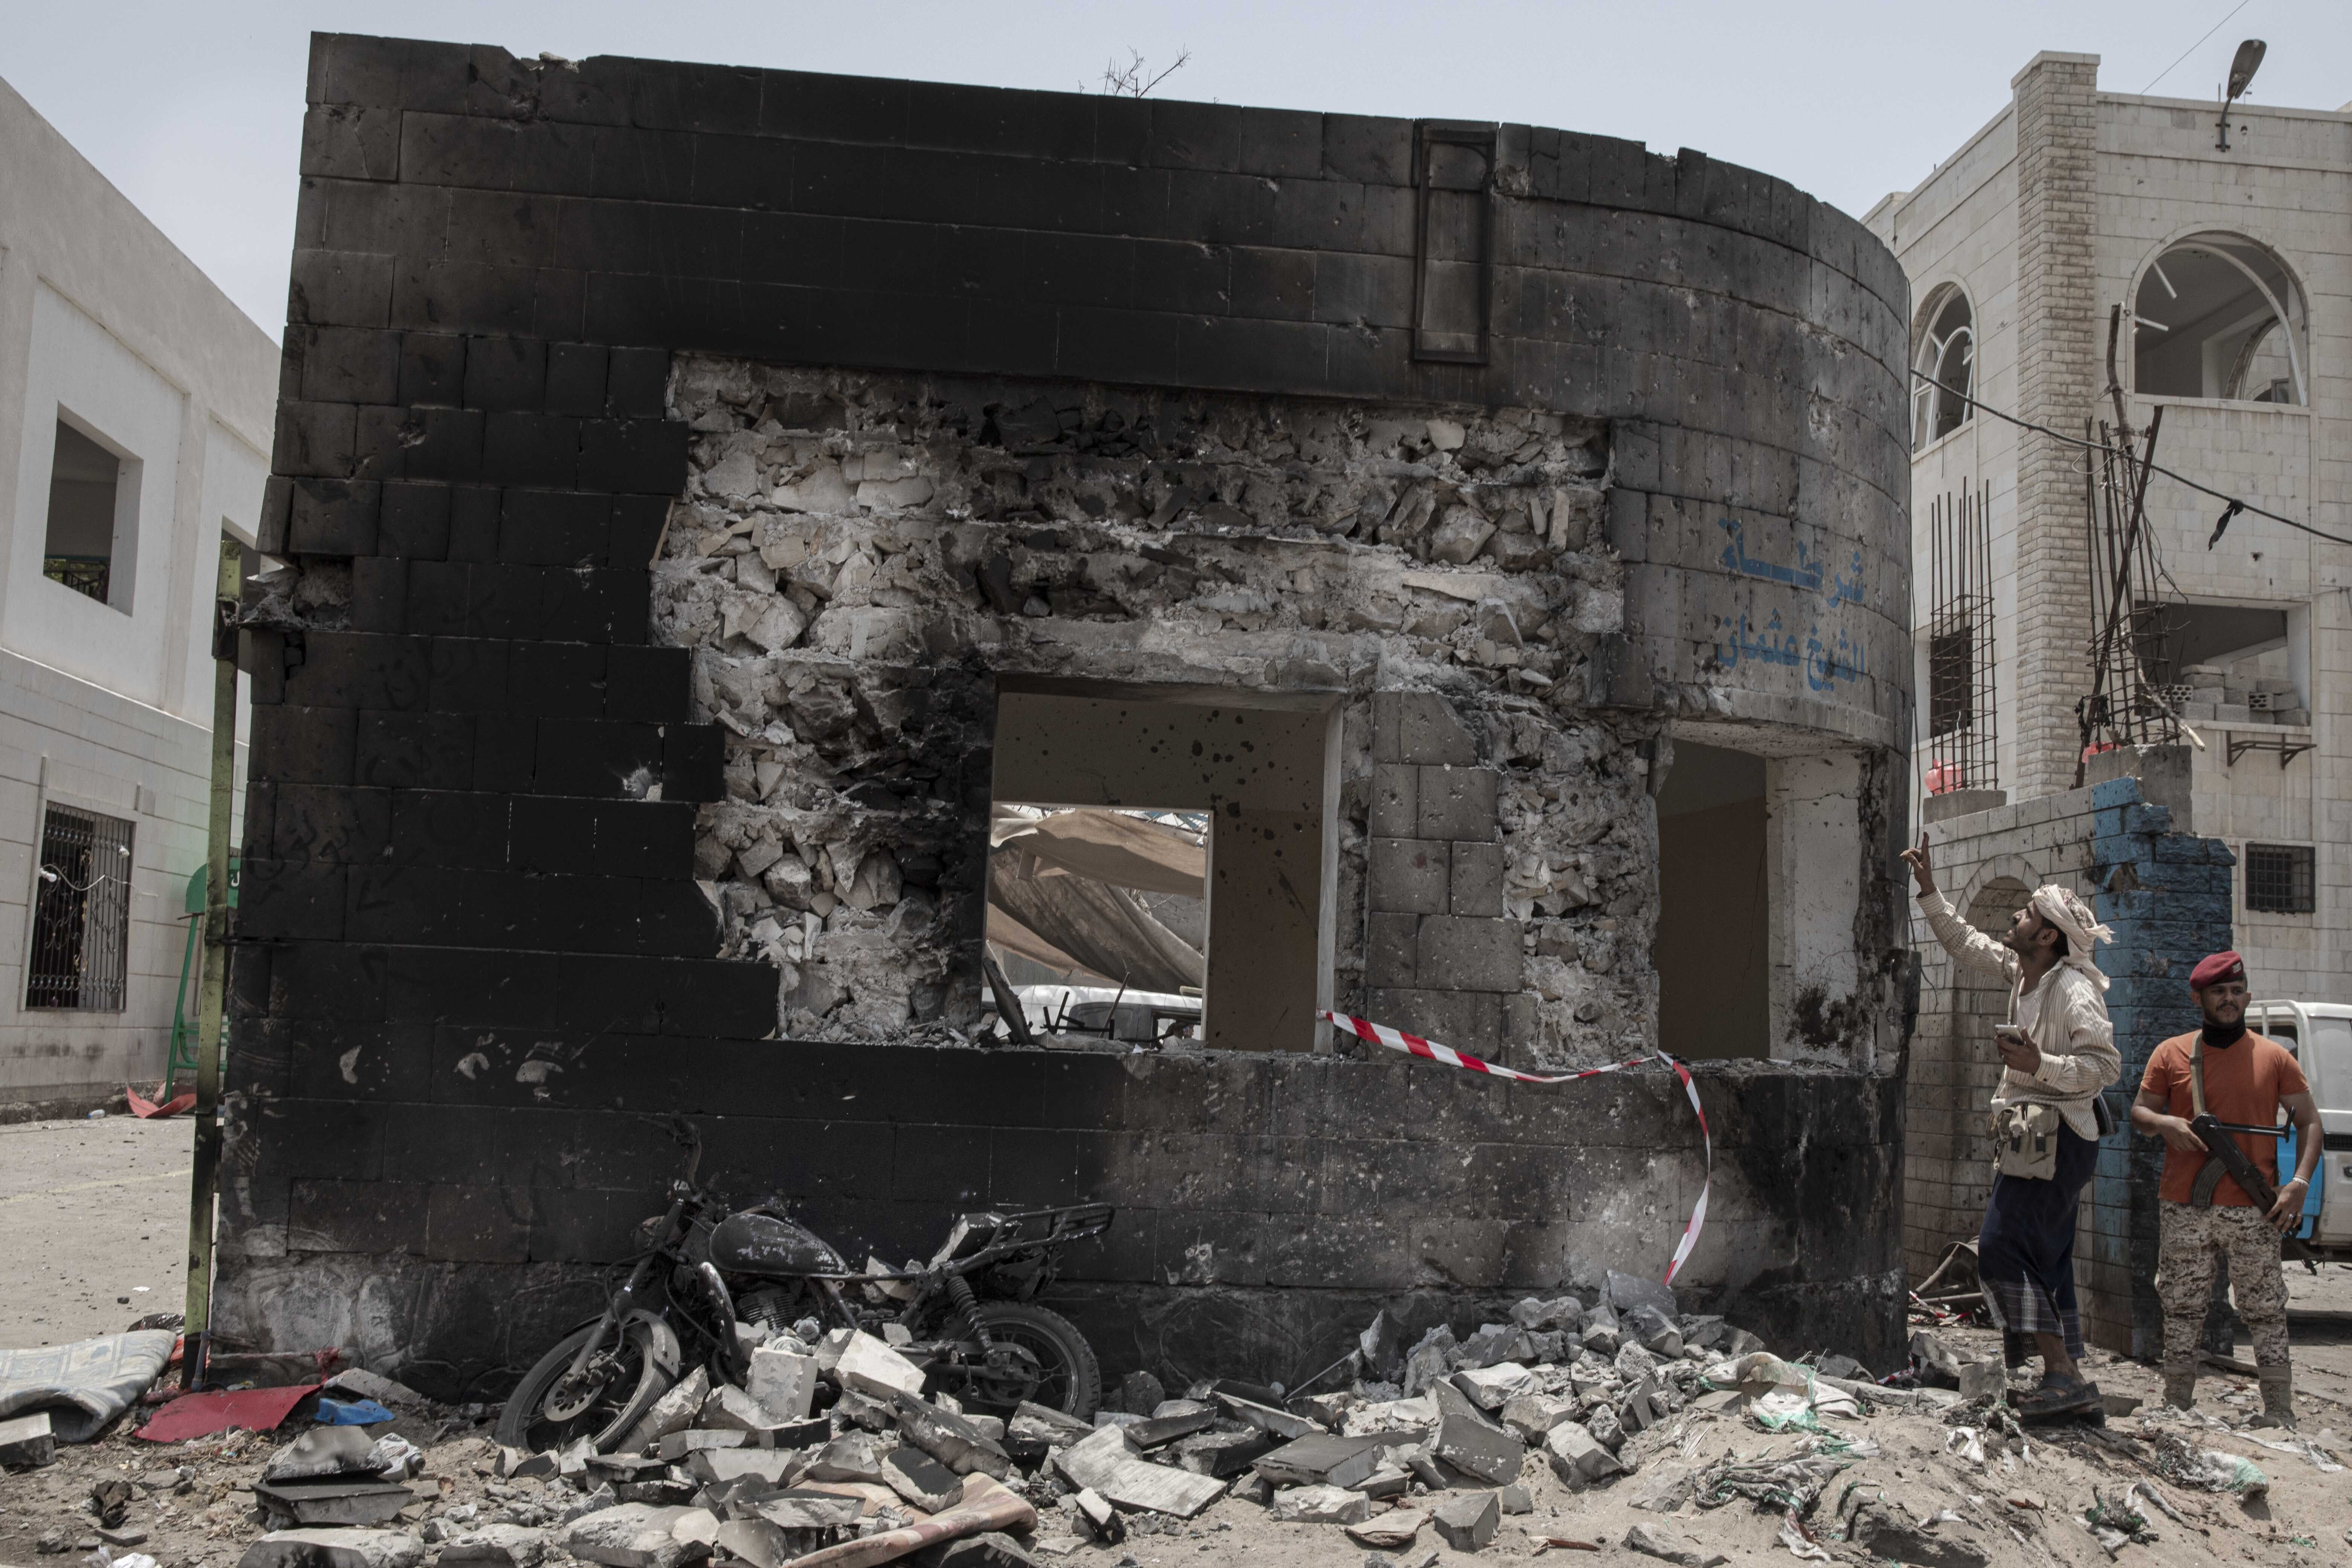 Security forces inspect the site of a deadly attack in Aden, Yemen, Thursday, Aug. 1, 2019. Yemen's rebels fired a ballistic missile at a military parade Thursday in the southern port city of Aden as coordinated suicide bombings targeted a police station in another part of the city. The attacks killed over 50 people and wounded dozens. (AP Photo/Nariman El-Mofty)